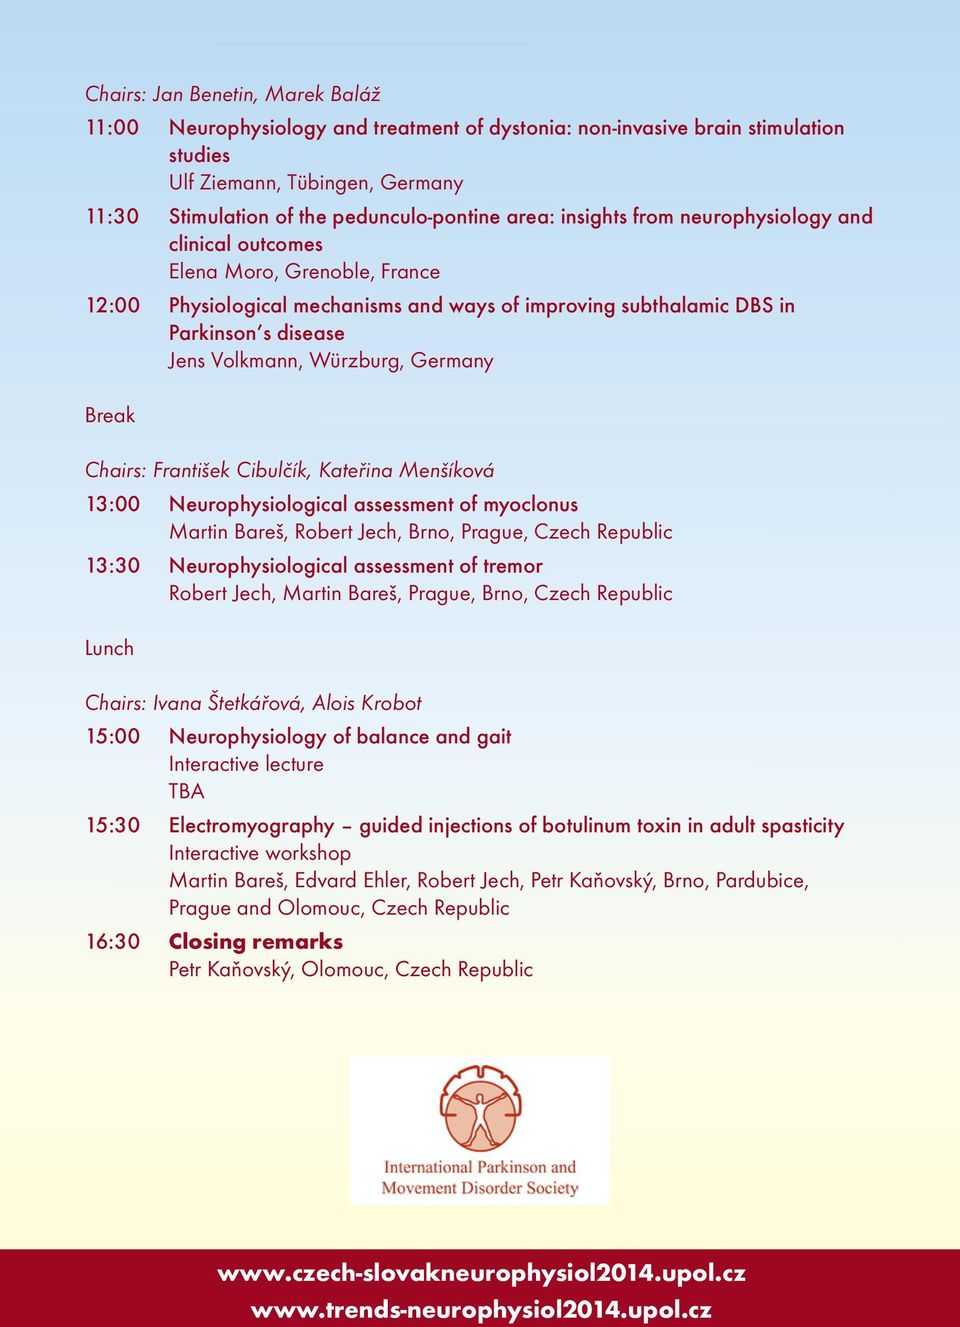 Würzburg, Germany Break Chairs: František Cibulčík, Kateřina Menšíková 13:00 Neurophysiological assessment of myoclonus Martin Bareš, Robert Jech, Brno, Prague, Czech Republic 13:30